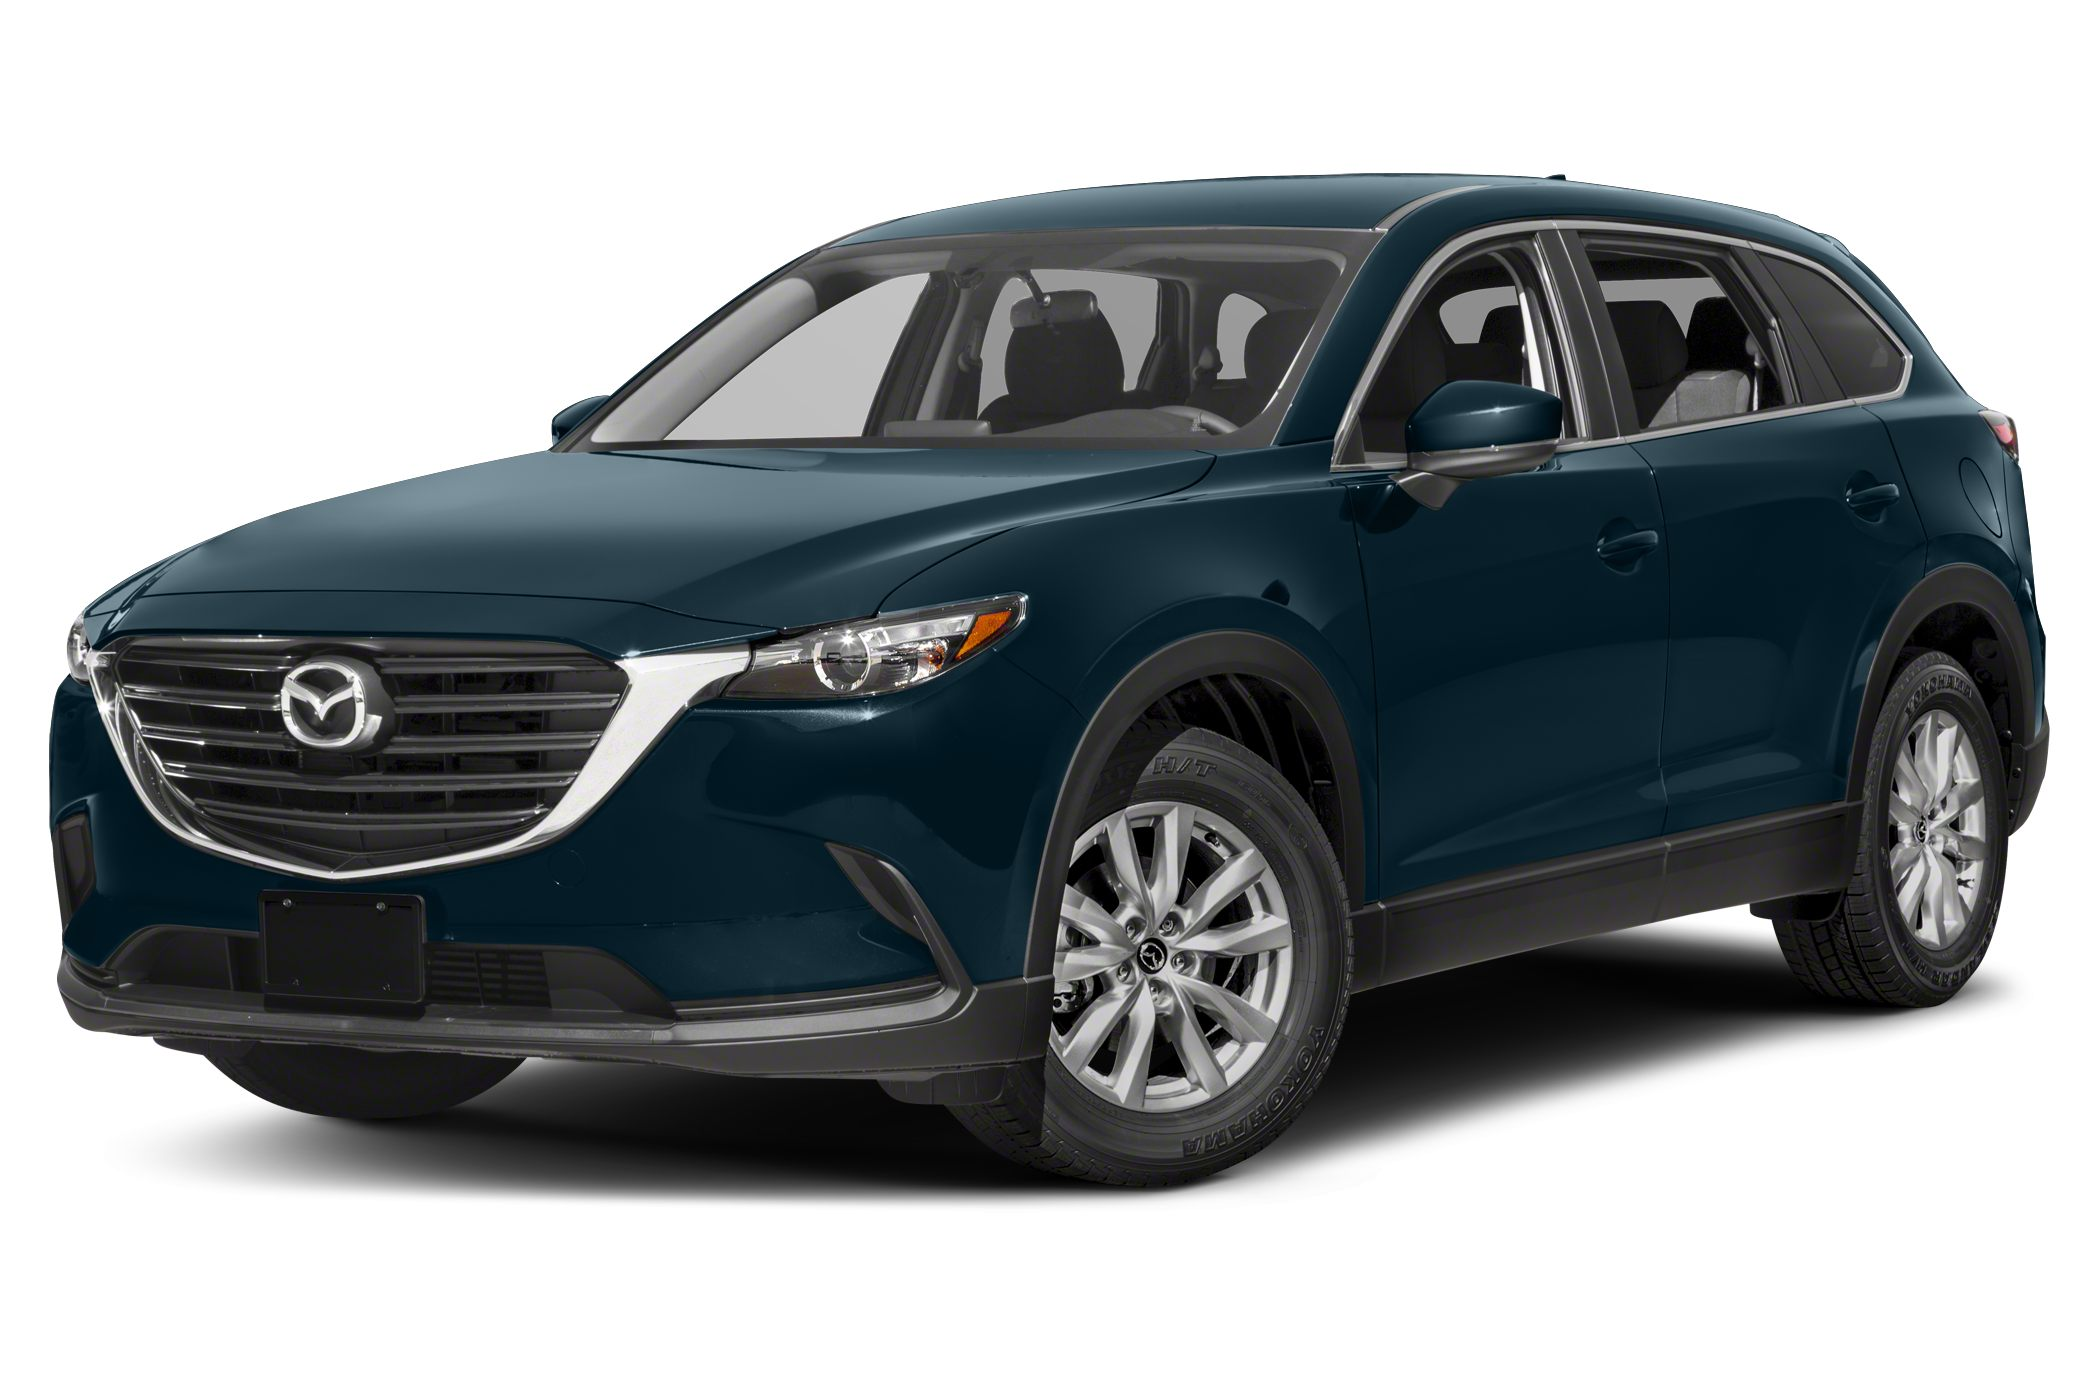 2016 mazda cx 9 starts at 32 420 with standard turbo engine autoblog. Black Bedroom Furniture Sets. Home Design Ideas